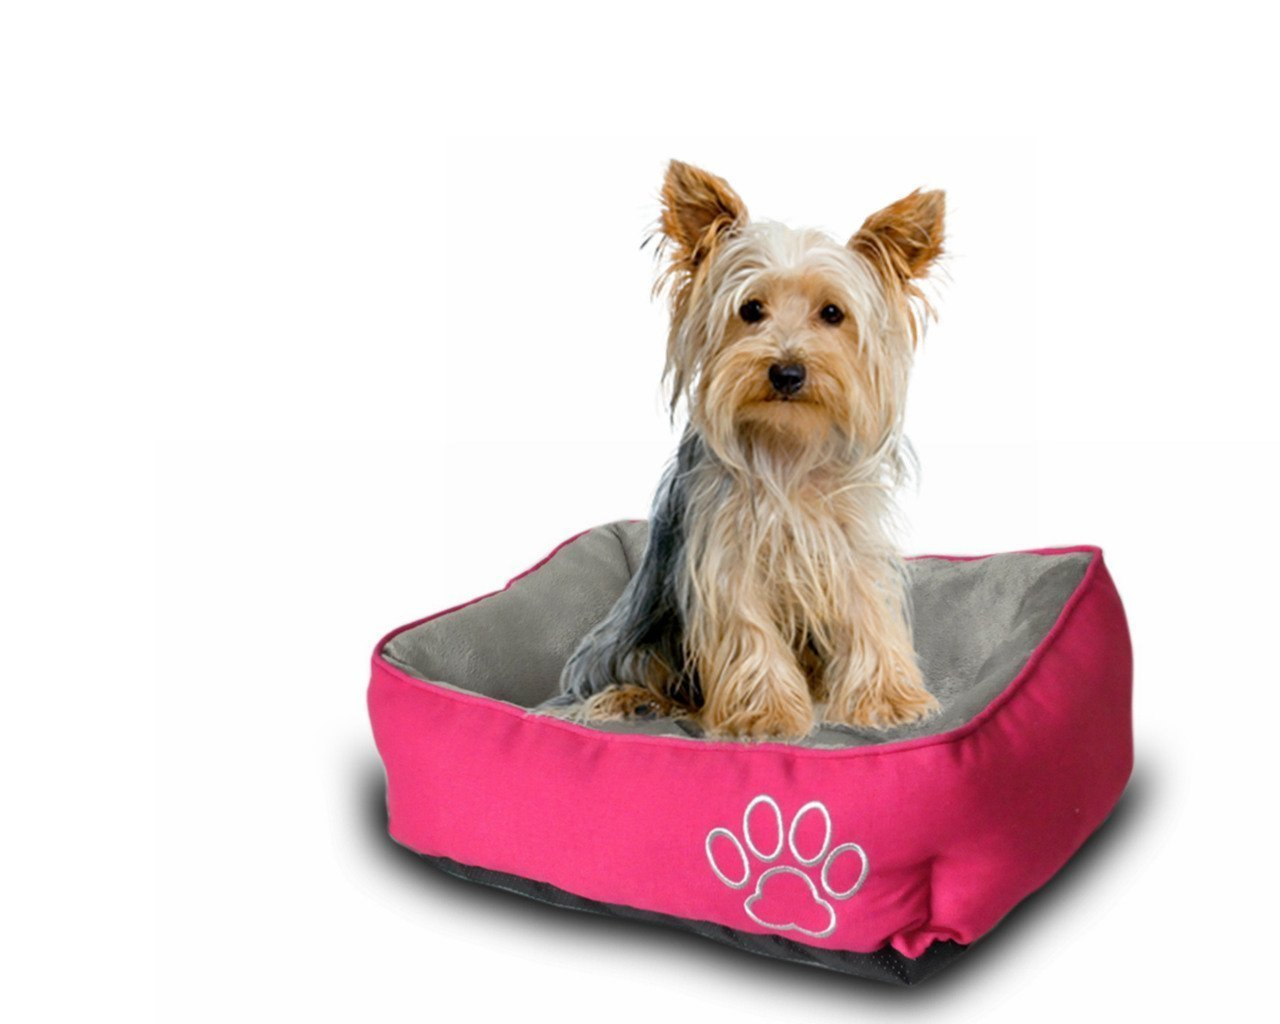 PetPaw Pet Bed for Cats and Small Dogs Fade Resistance- Improved Sleep- Machine Washable- Waterproof Bottom